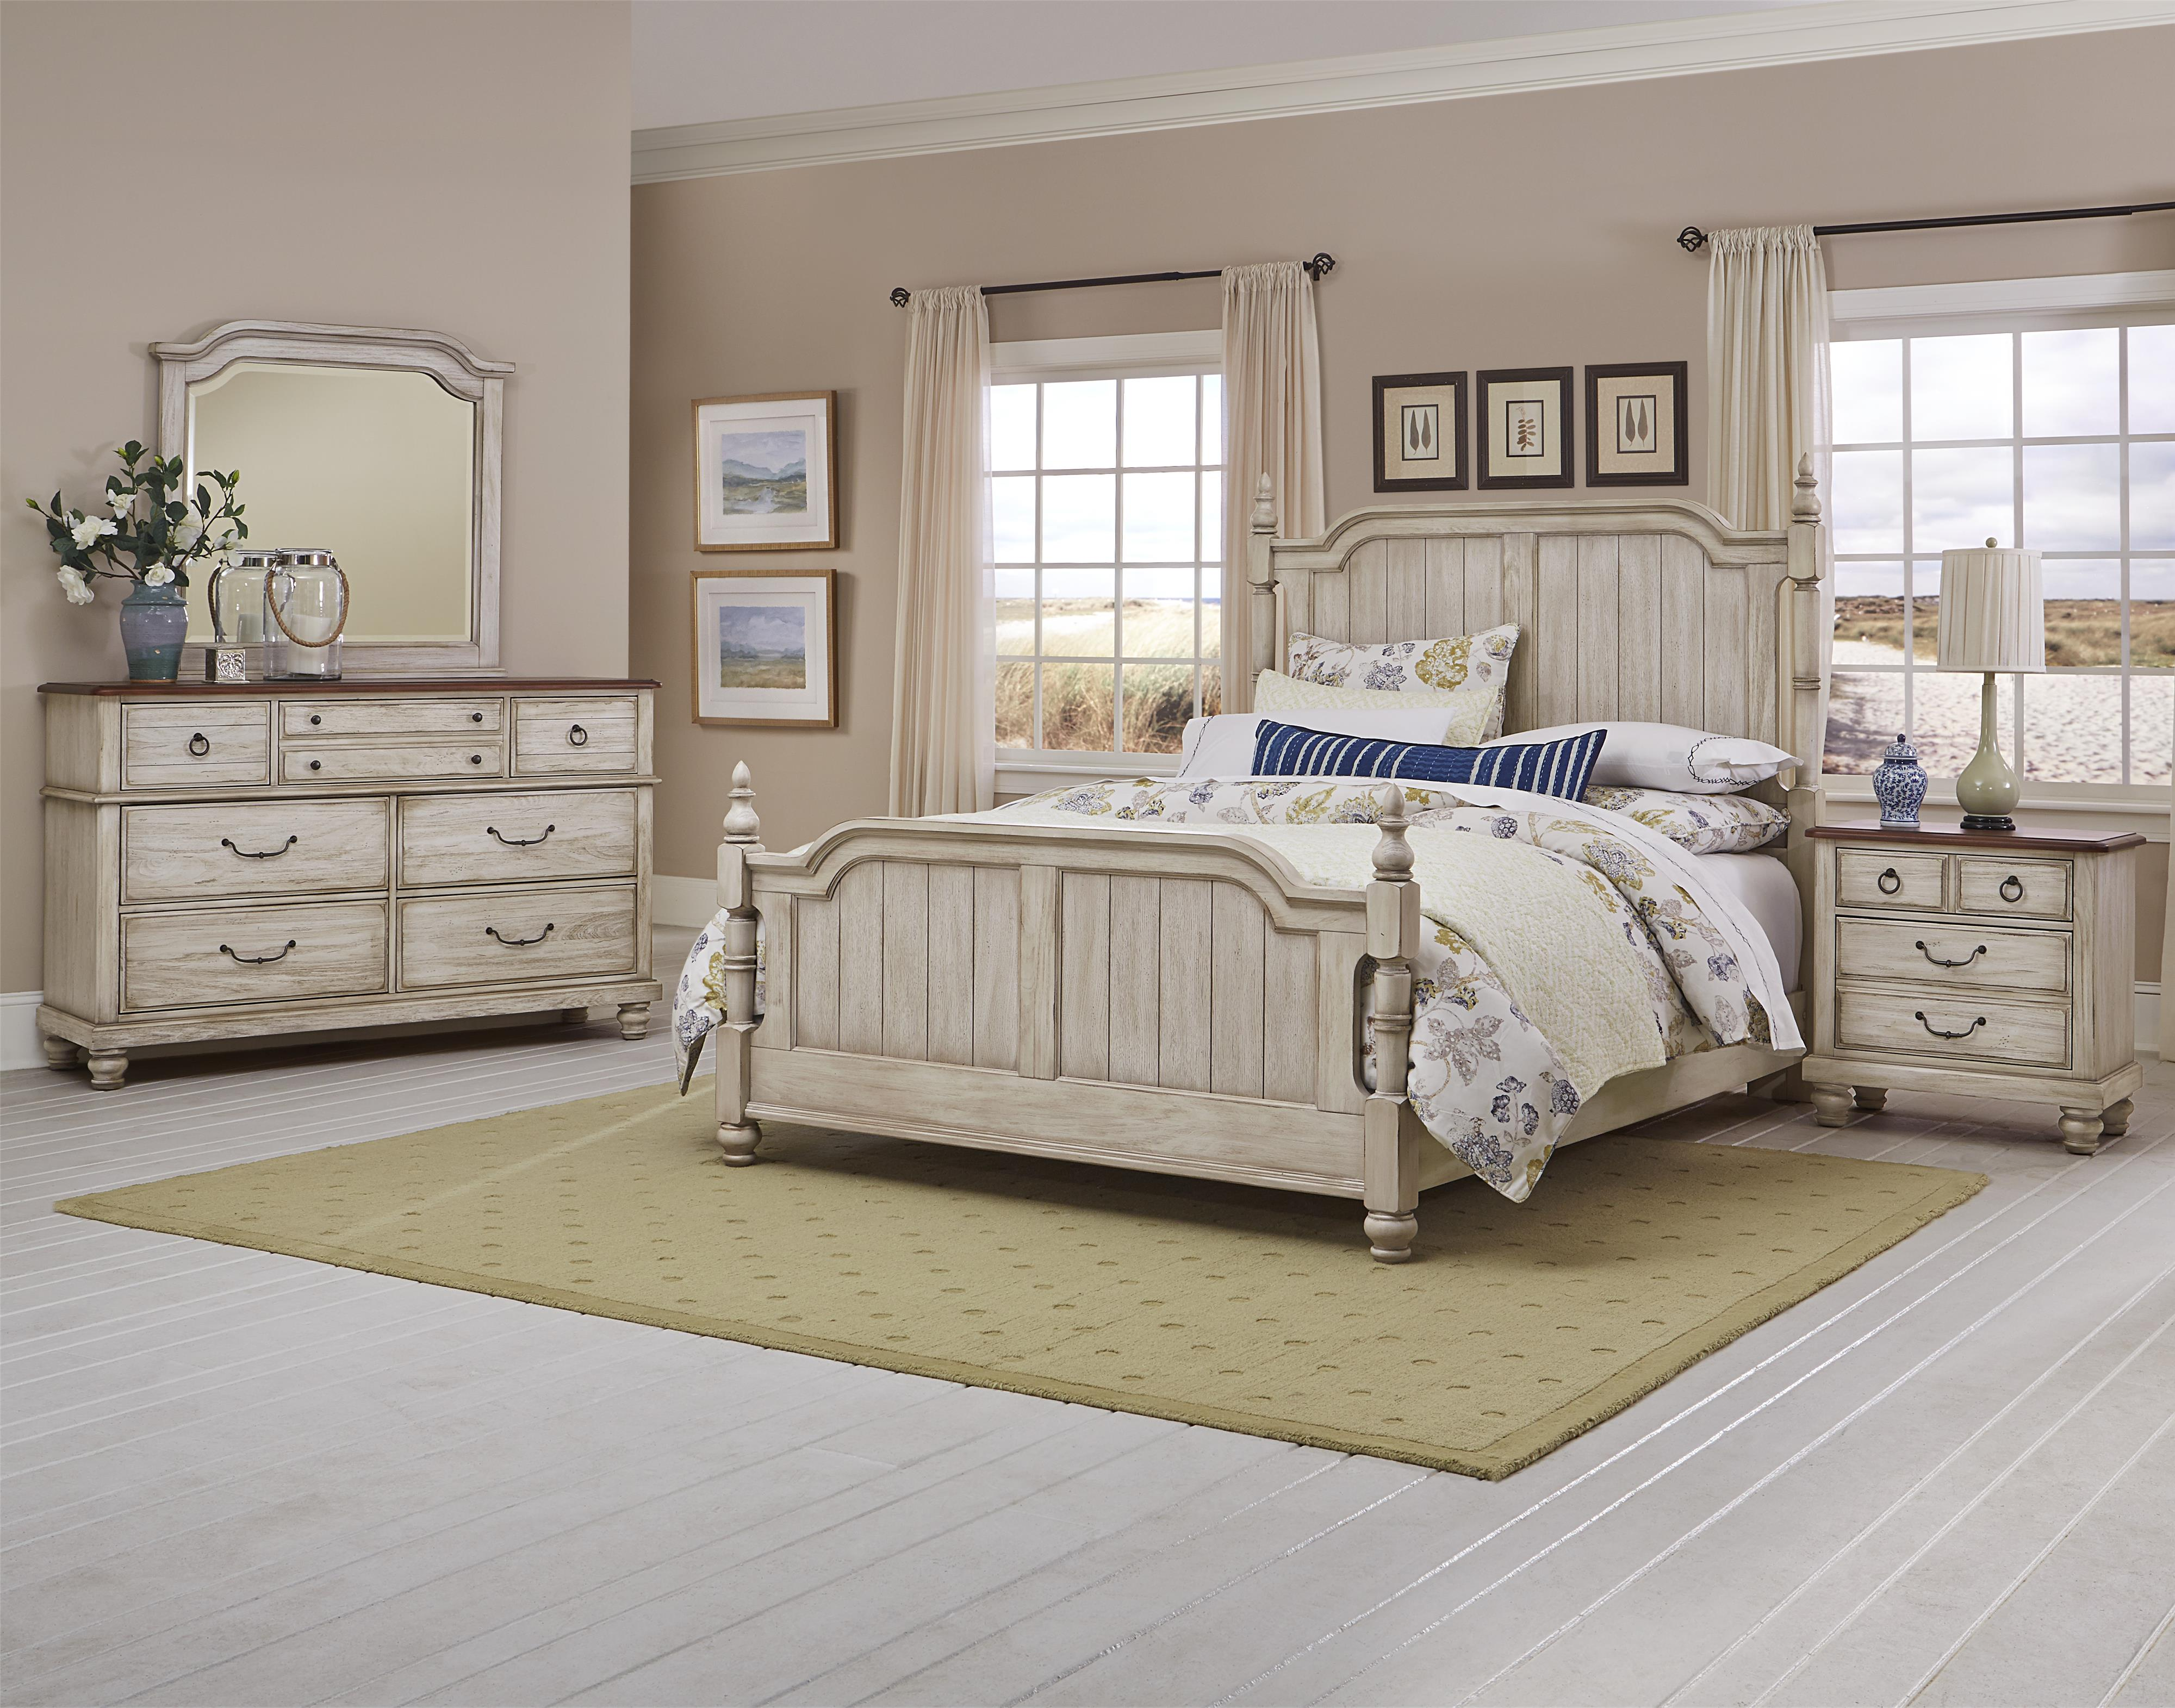 Vaughan bassett arrendelle king bedroom group wayside for Bedroom furniture groups